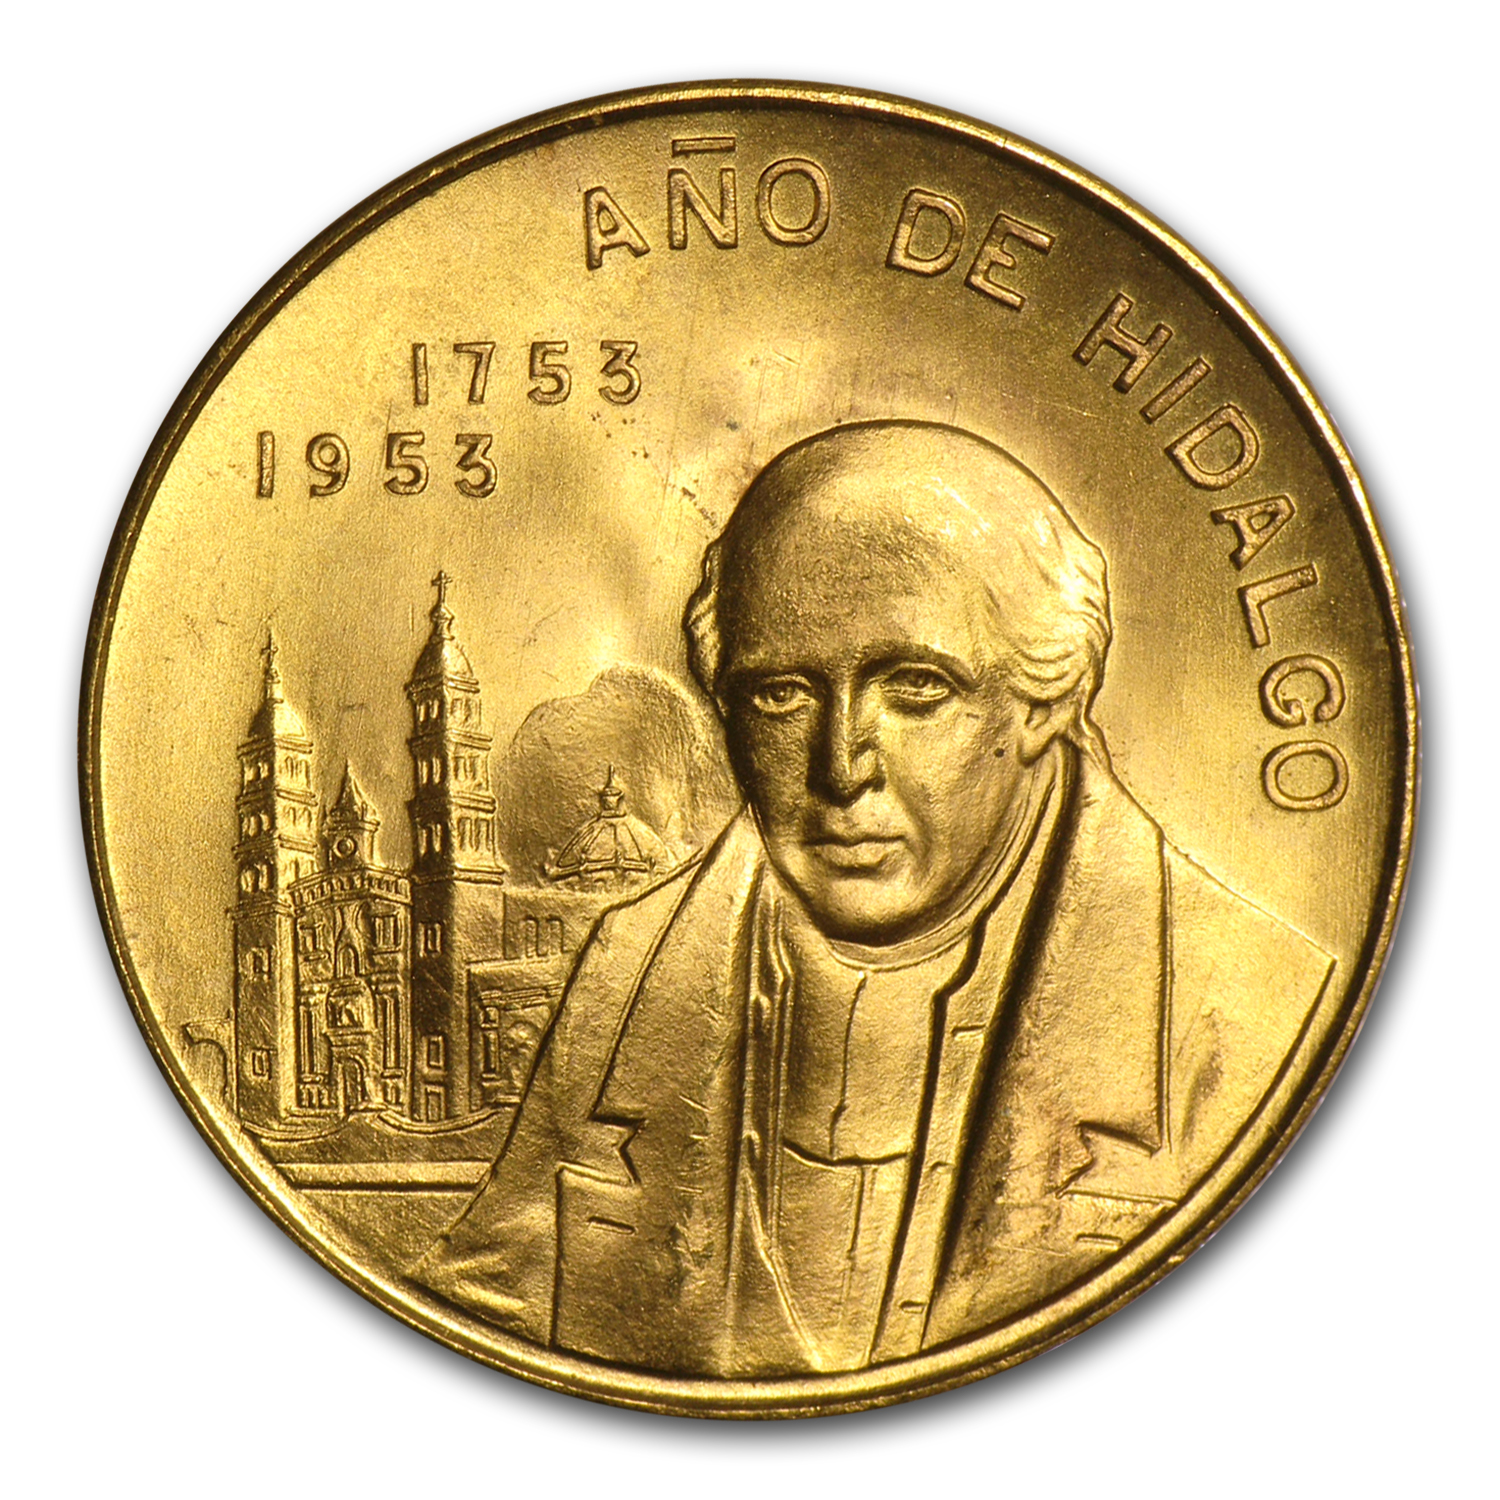 1953 Mexico Gold Year of Hidalgo Medal BU